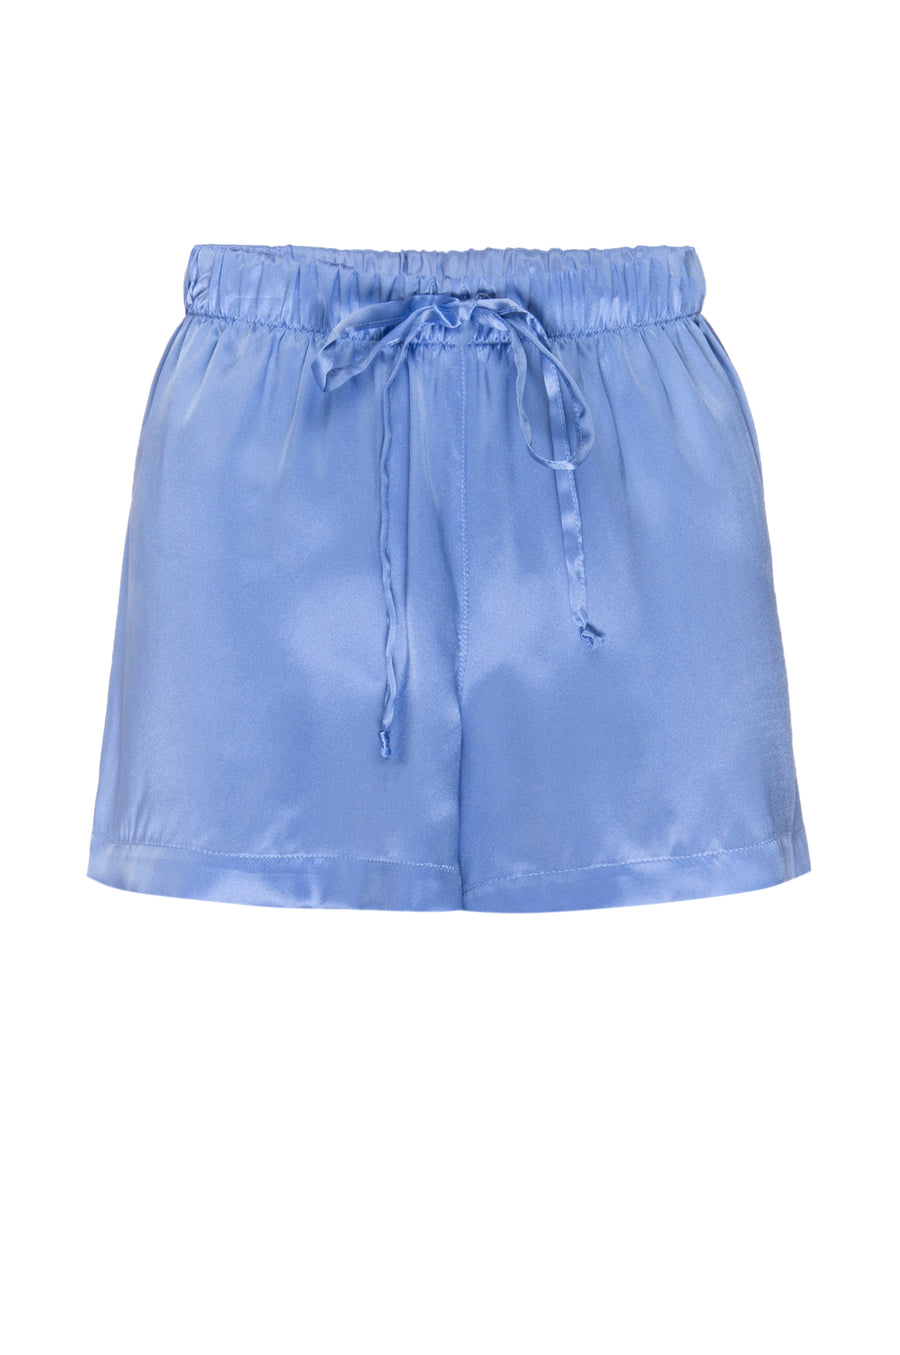 Silk Charmeuse PJ Shorts: Sky Blue